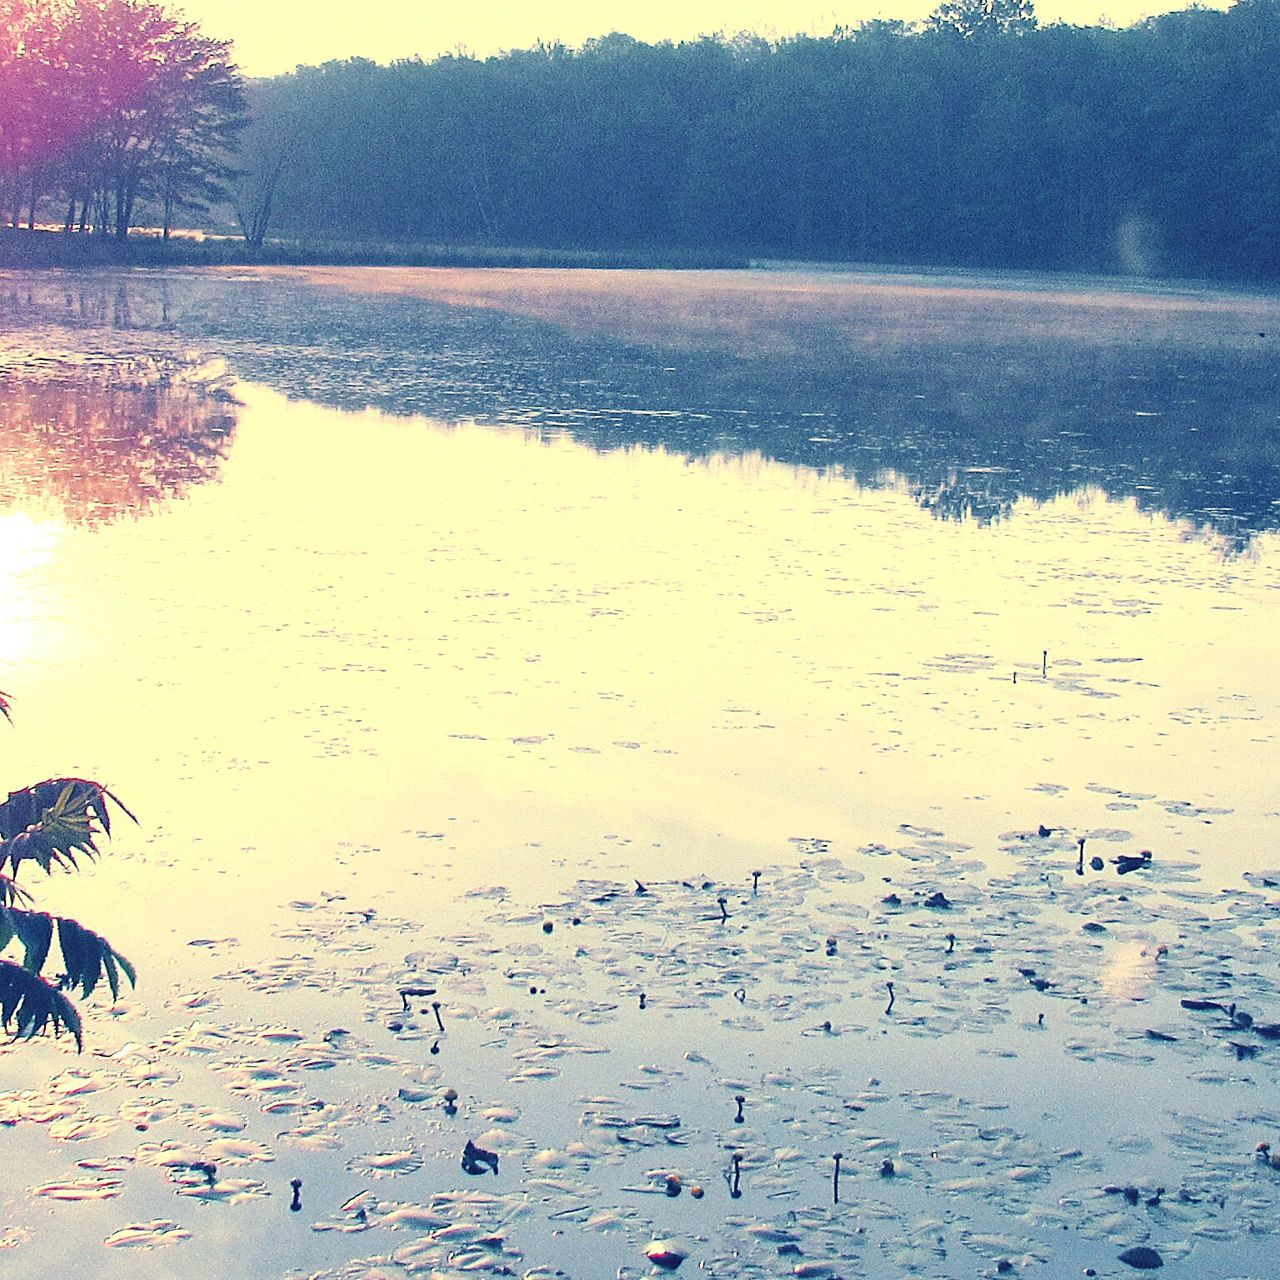 water, nature, no people, beauty in nature, lake, scenics, tranquility, outdoors, beach, tree, day, bird